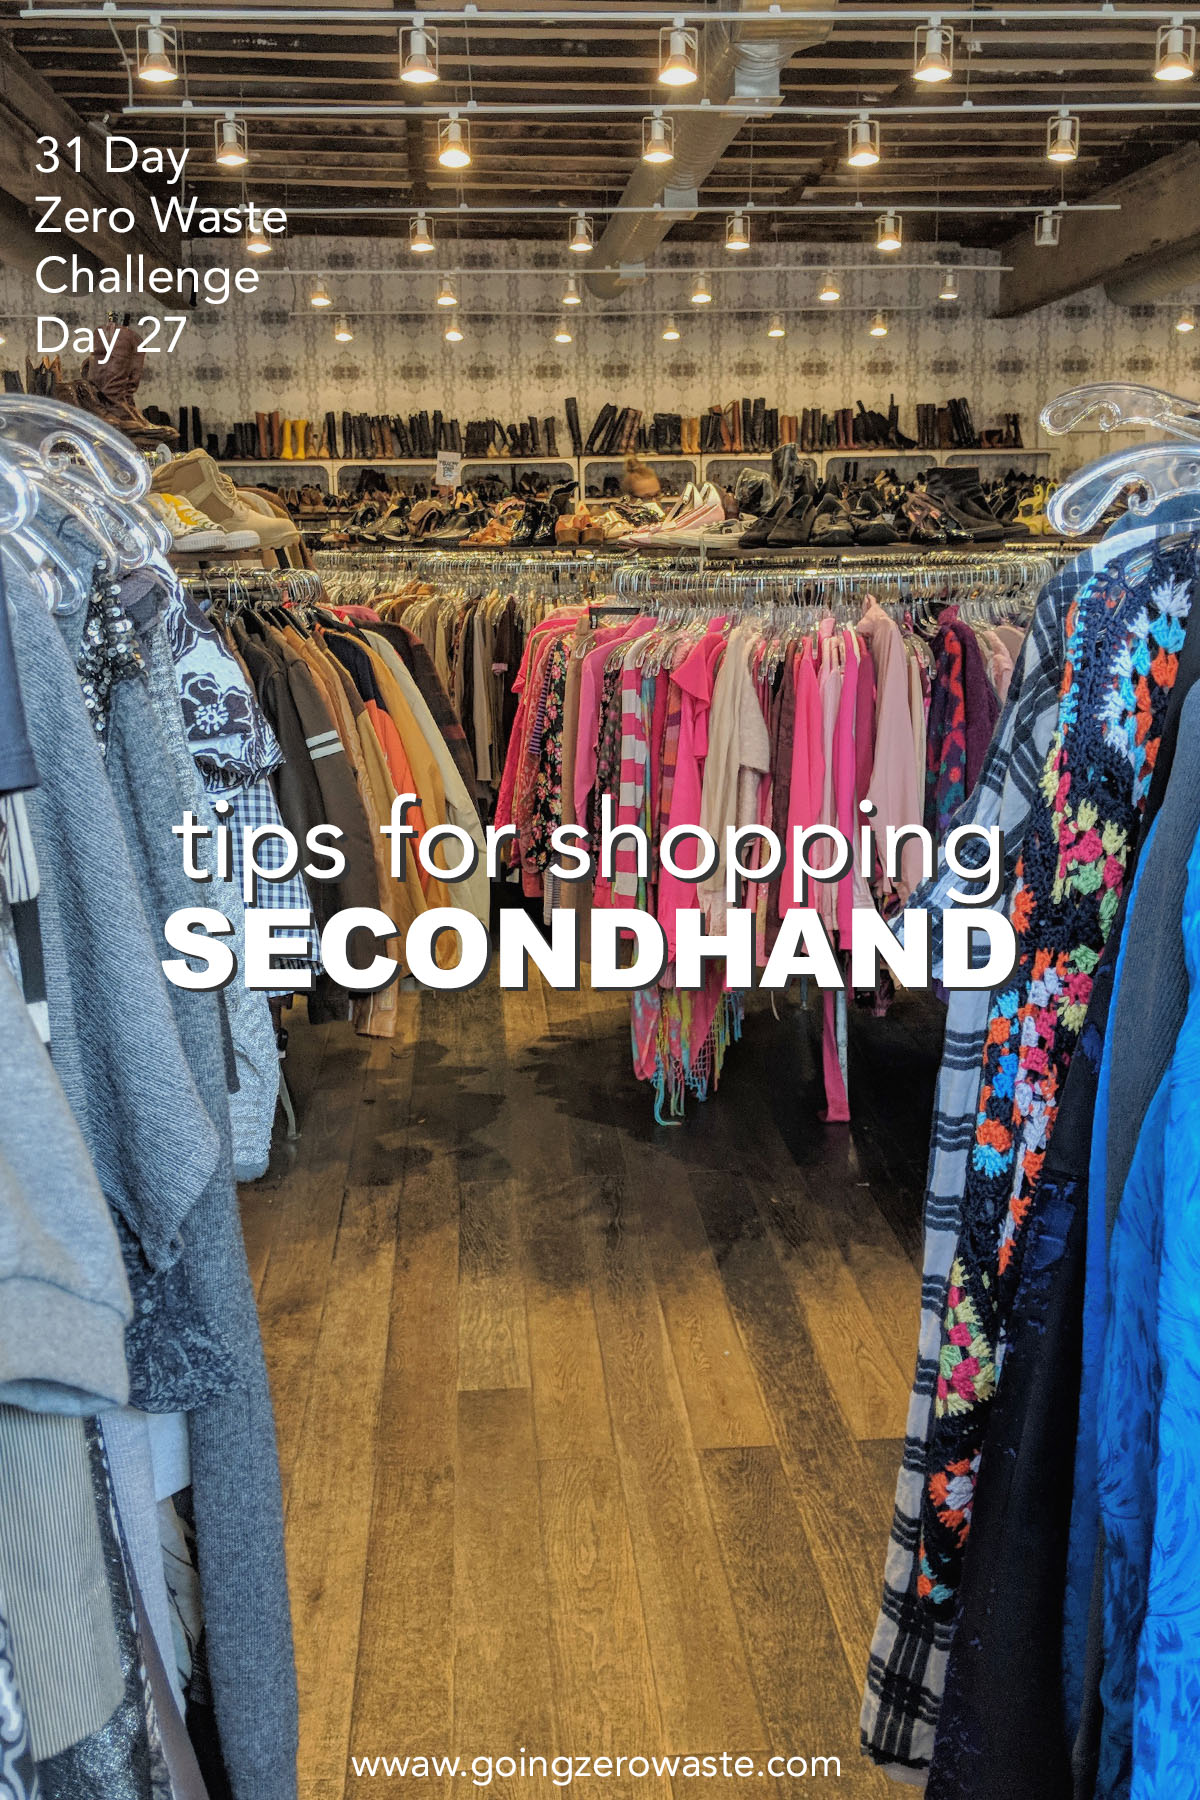 Tips for Secondhand Shopping - Day 27 of the Zero Waste Challenge